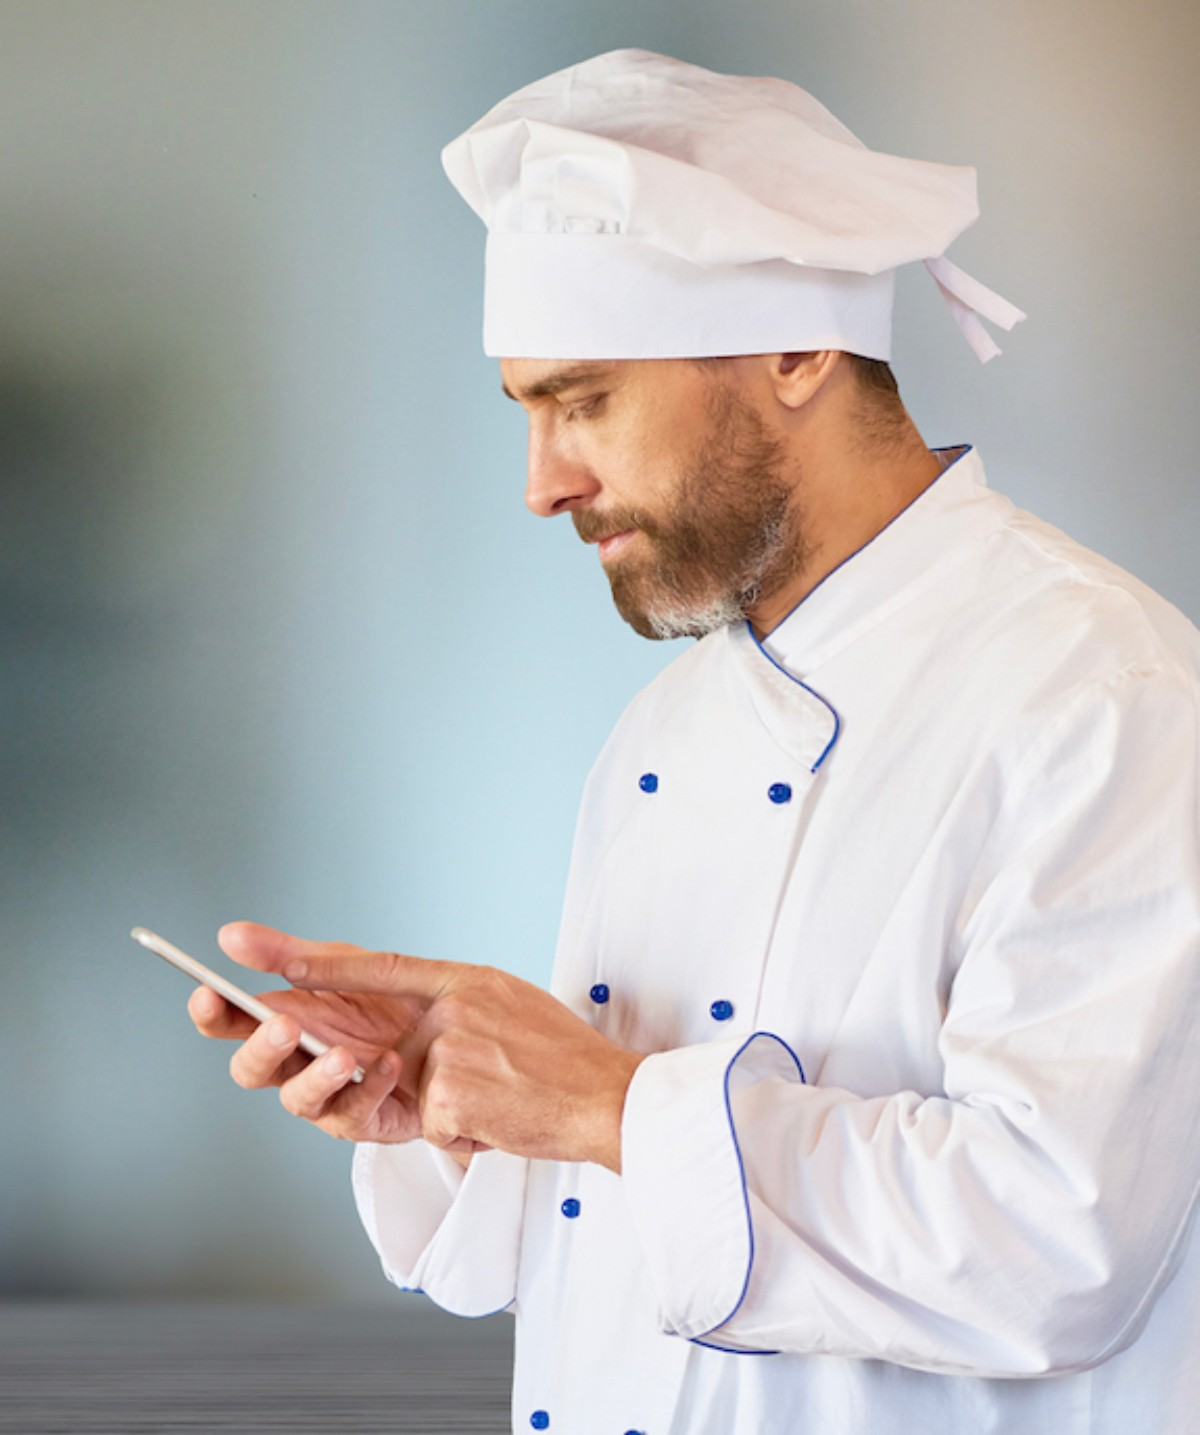 chef looking at phone